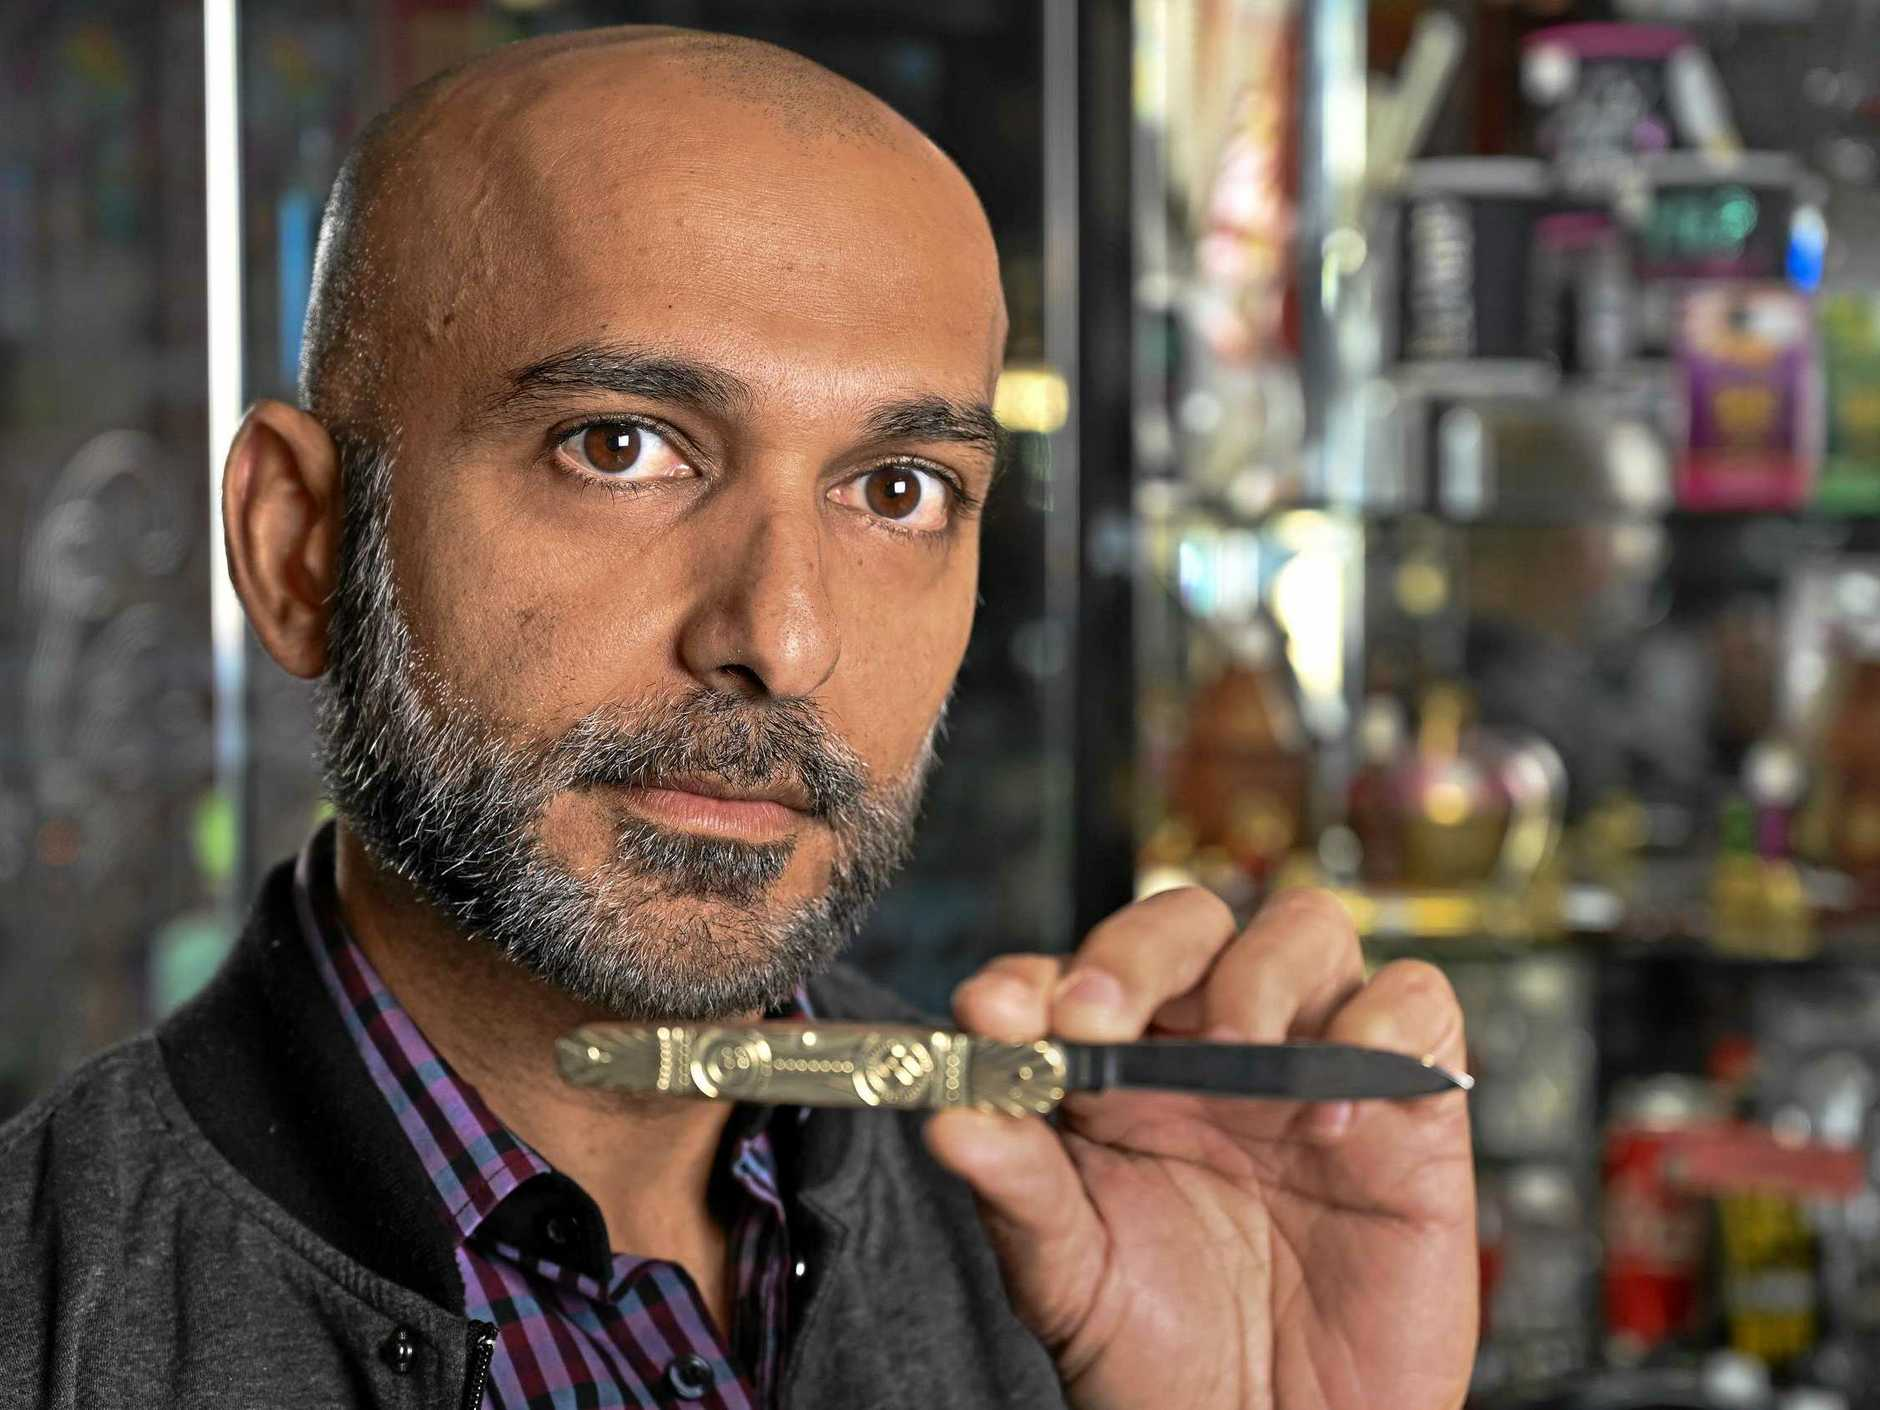 Owner of TSG Tobacco at Booval Fair Hitesh Khatri was mistakenly selling a knife with Nazi symbols.